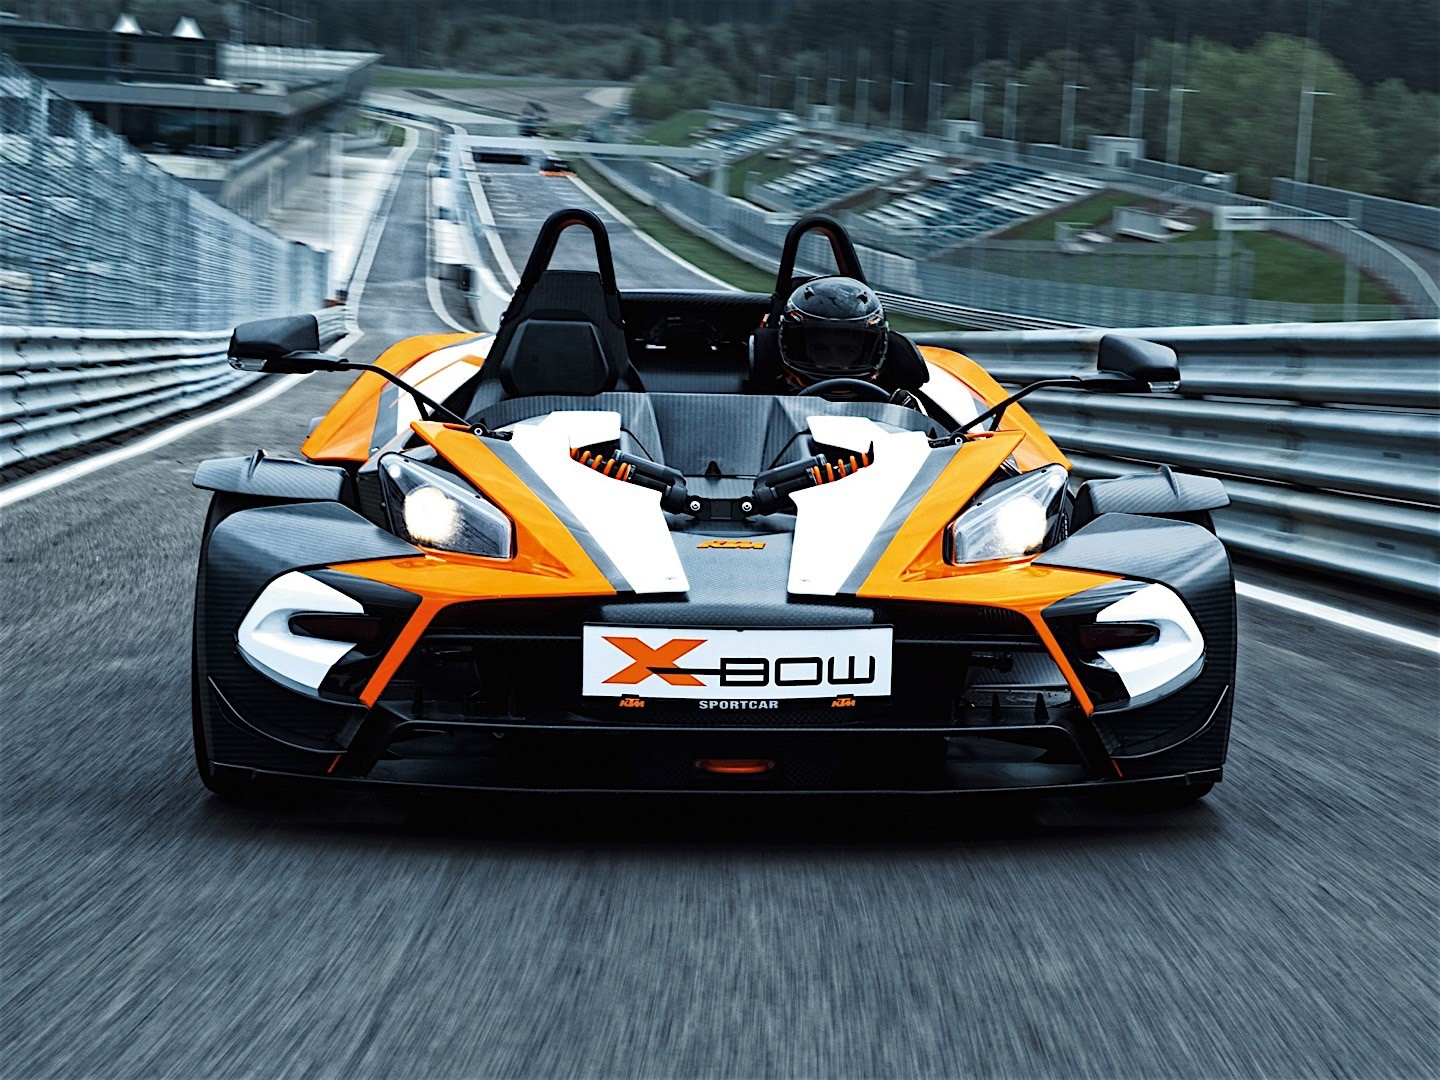 Car Wallpapers Hd 2013 Free Download Ktm X Bow R Specs 2011 2012 2013 2014 2015 2016